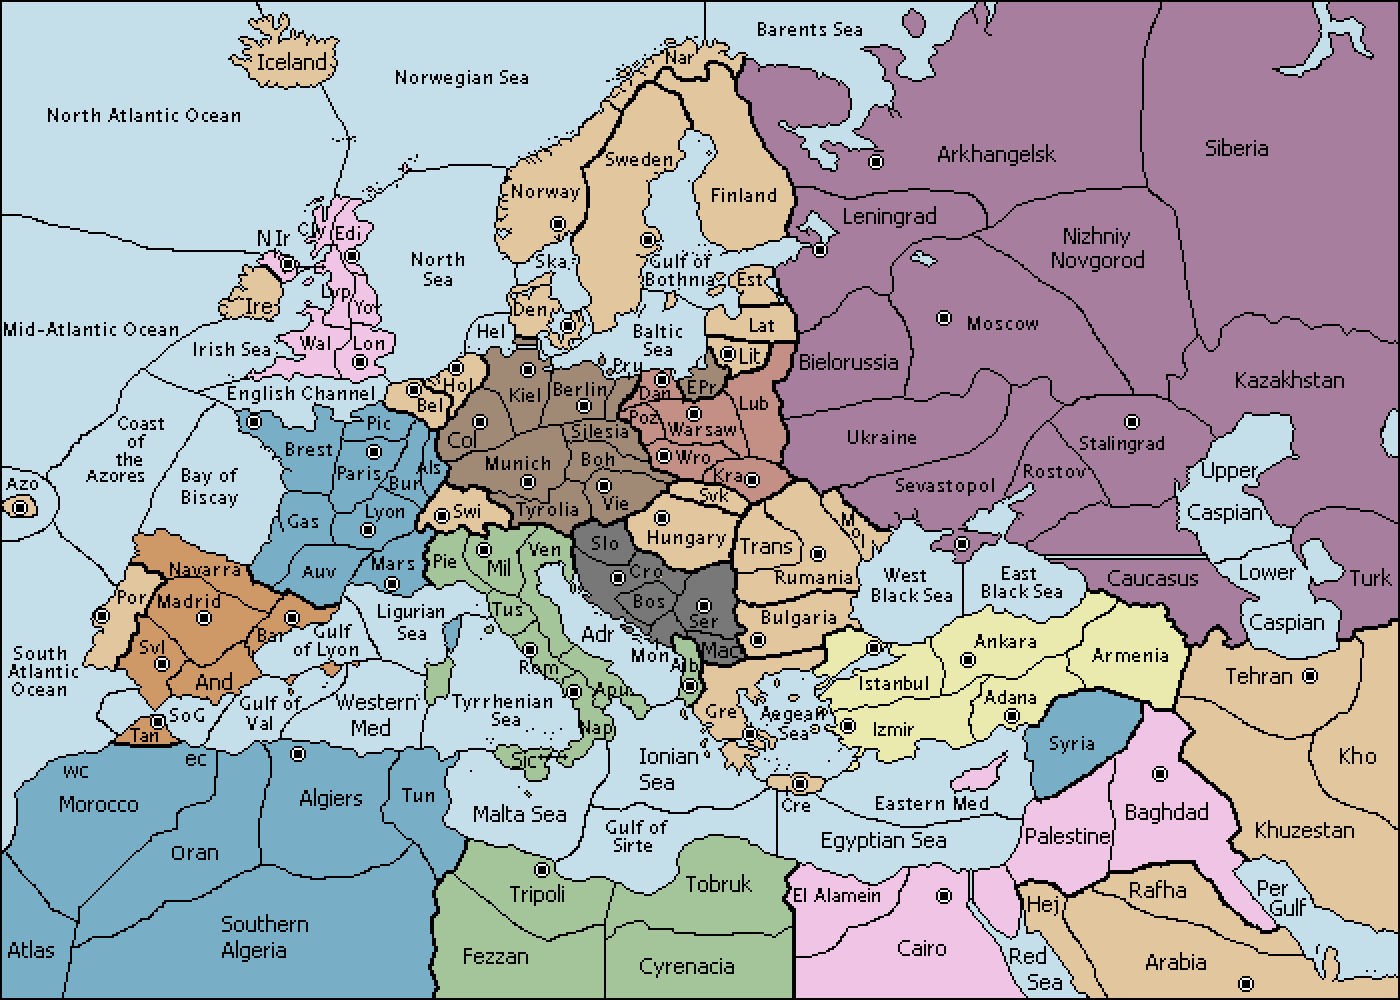 Variants And 1939 Map Of Europe | Map | Map, Europe, Comics